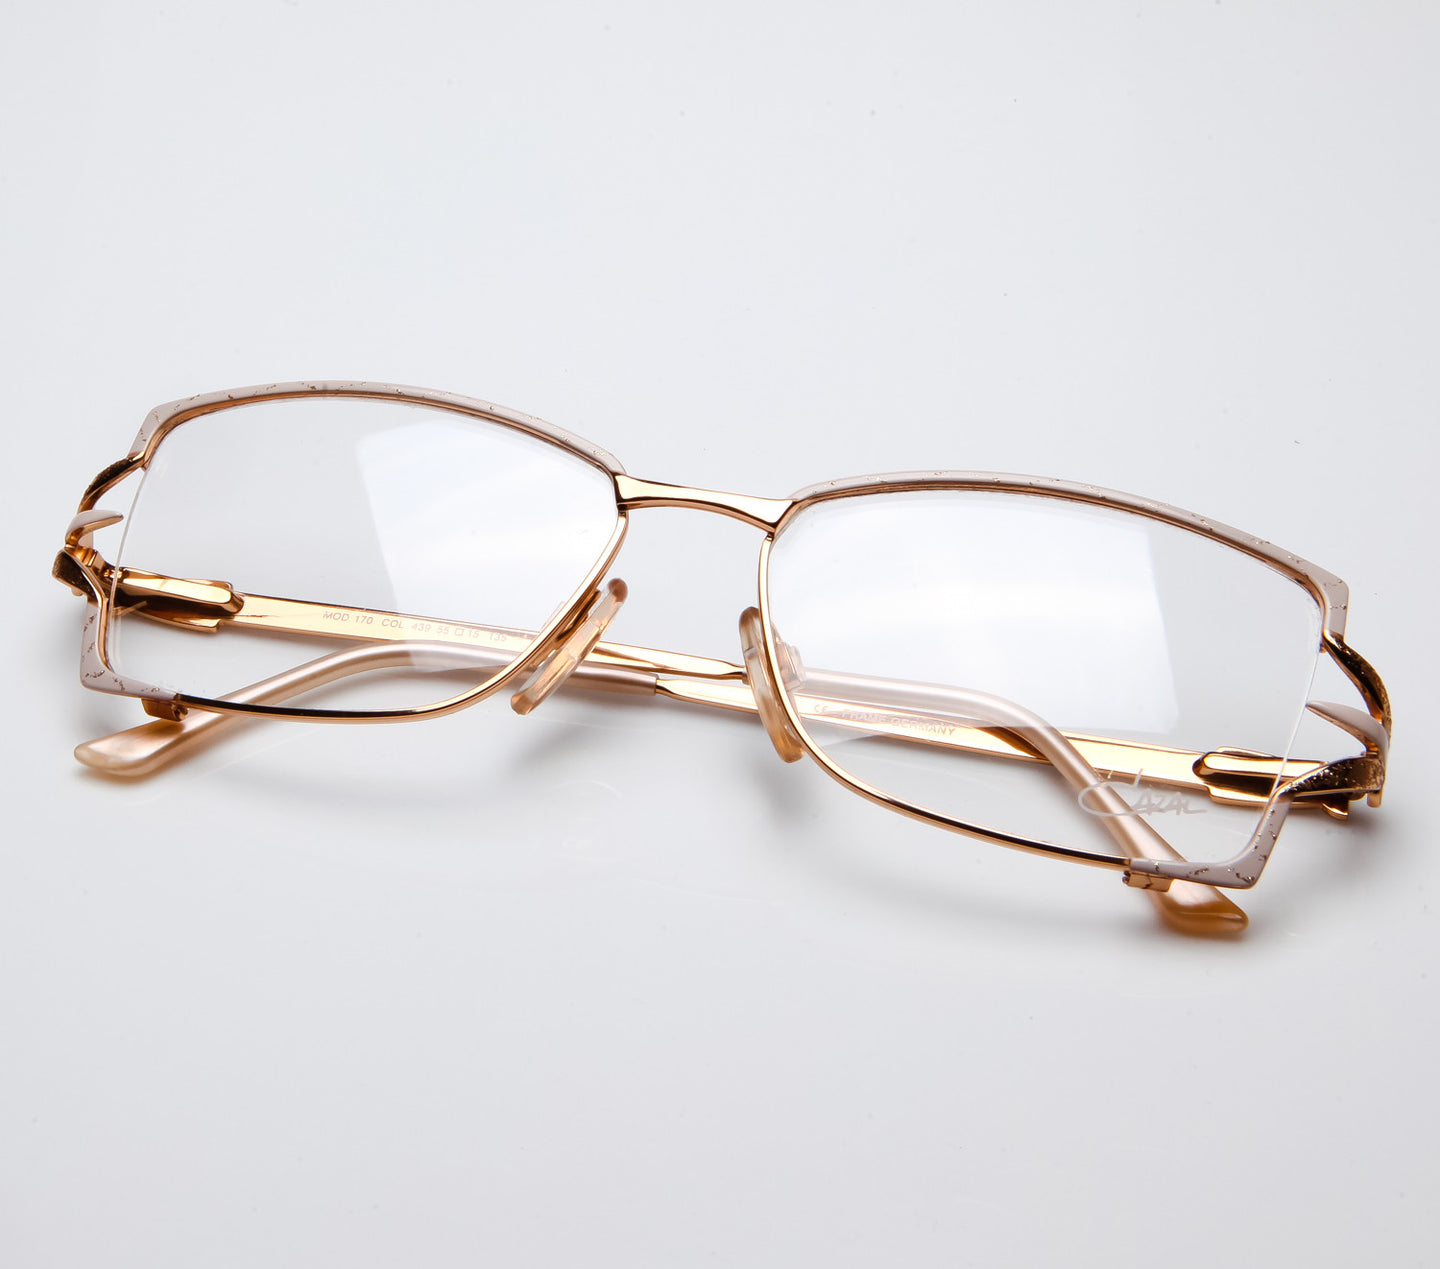 Cazal 170 439, Cazal , glasses frames, eyeglasses online, eyeglass frames, mens glasses, womens glasses, buy glasses online, designer eyeglasses, vintage sunglasses, retro sunglasses, vintage glasses, sunglass, eyeglass, glasses, lens, vintage frames company, vf